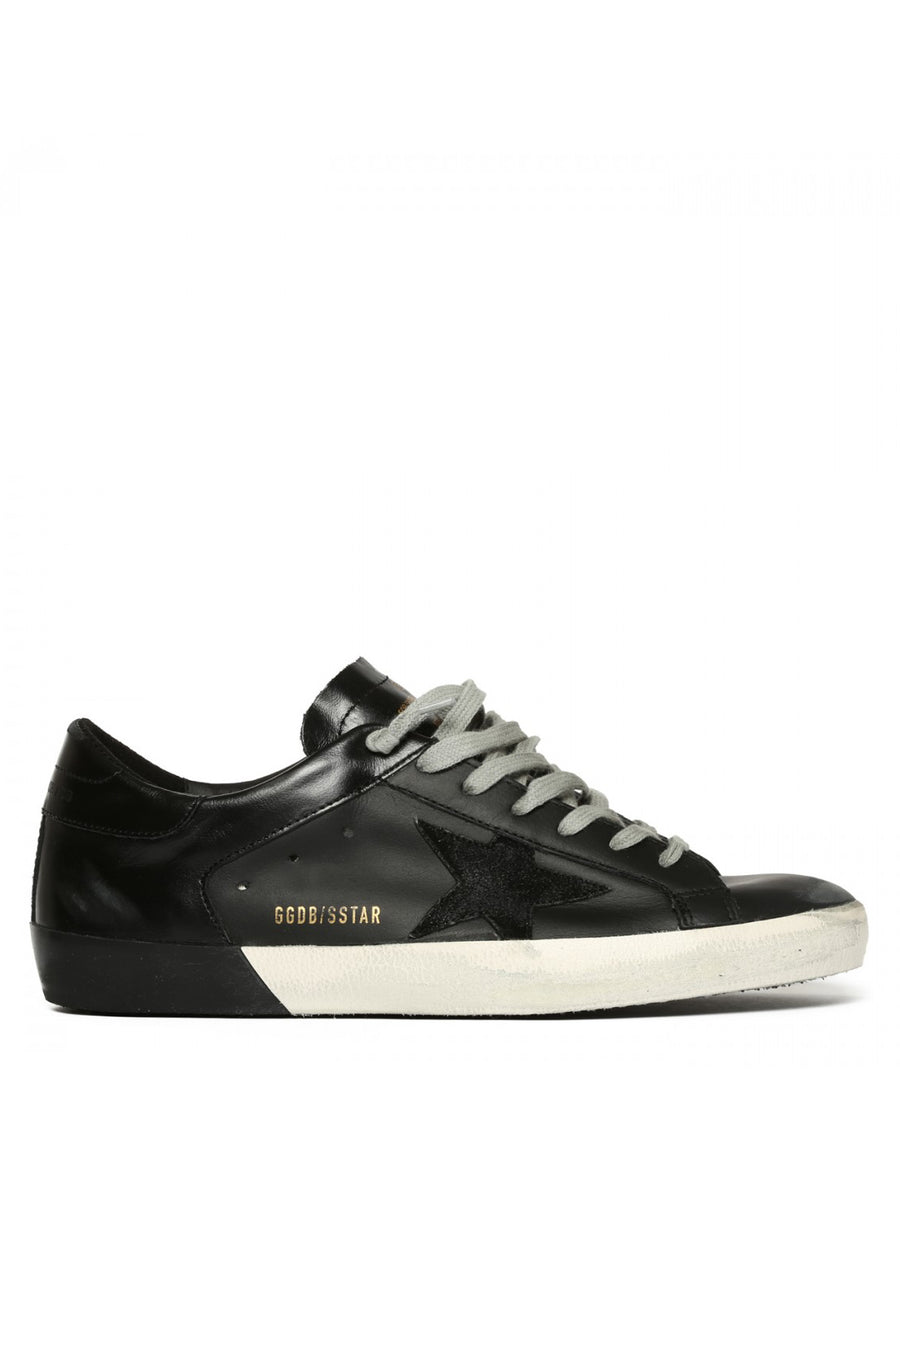 Superstar - Black Leather w/ Black Foxing - Pavilion